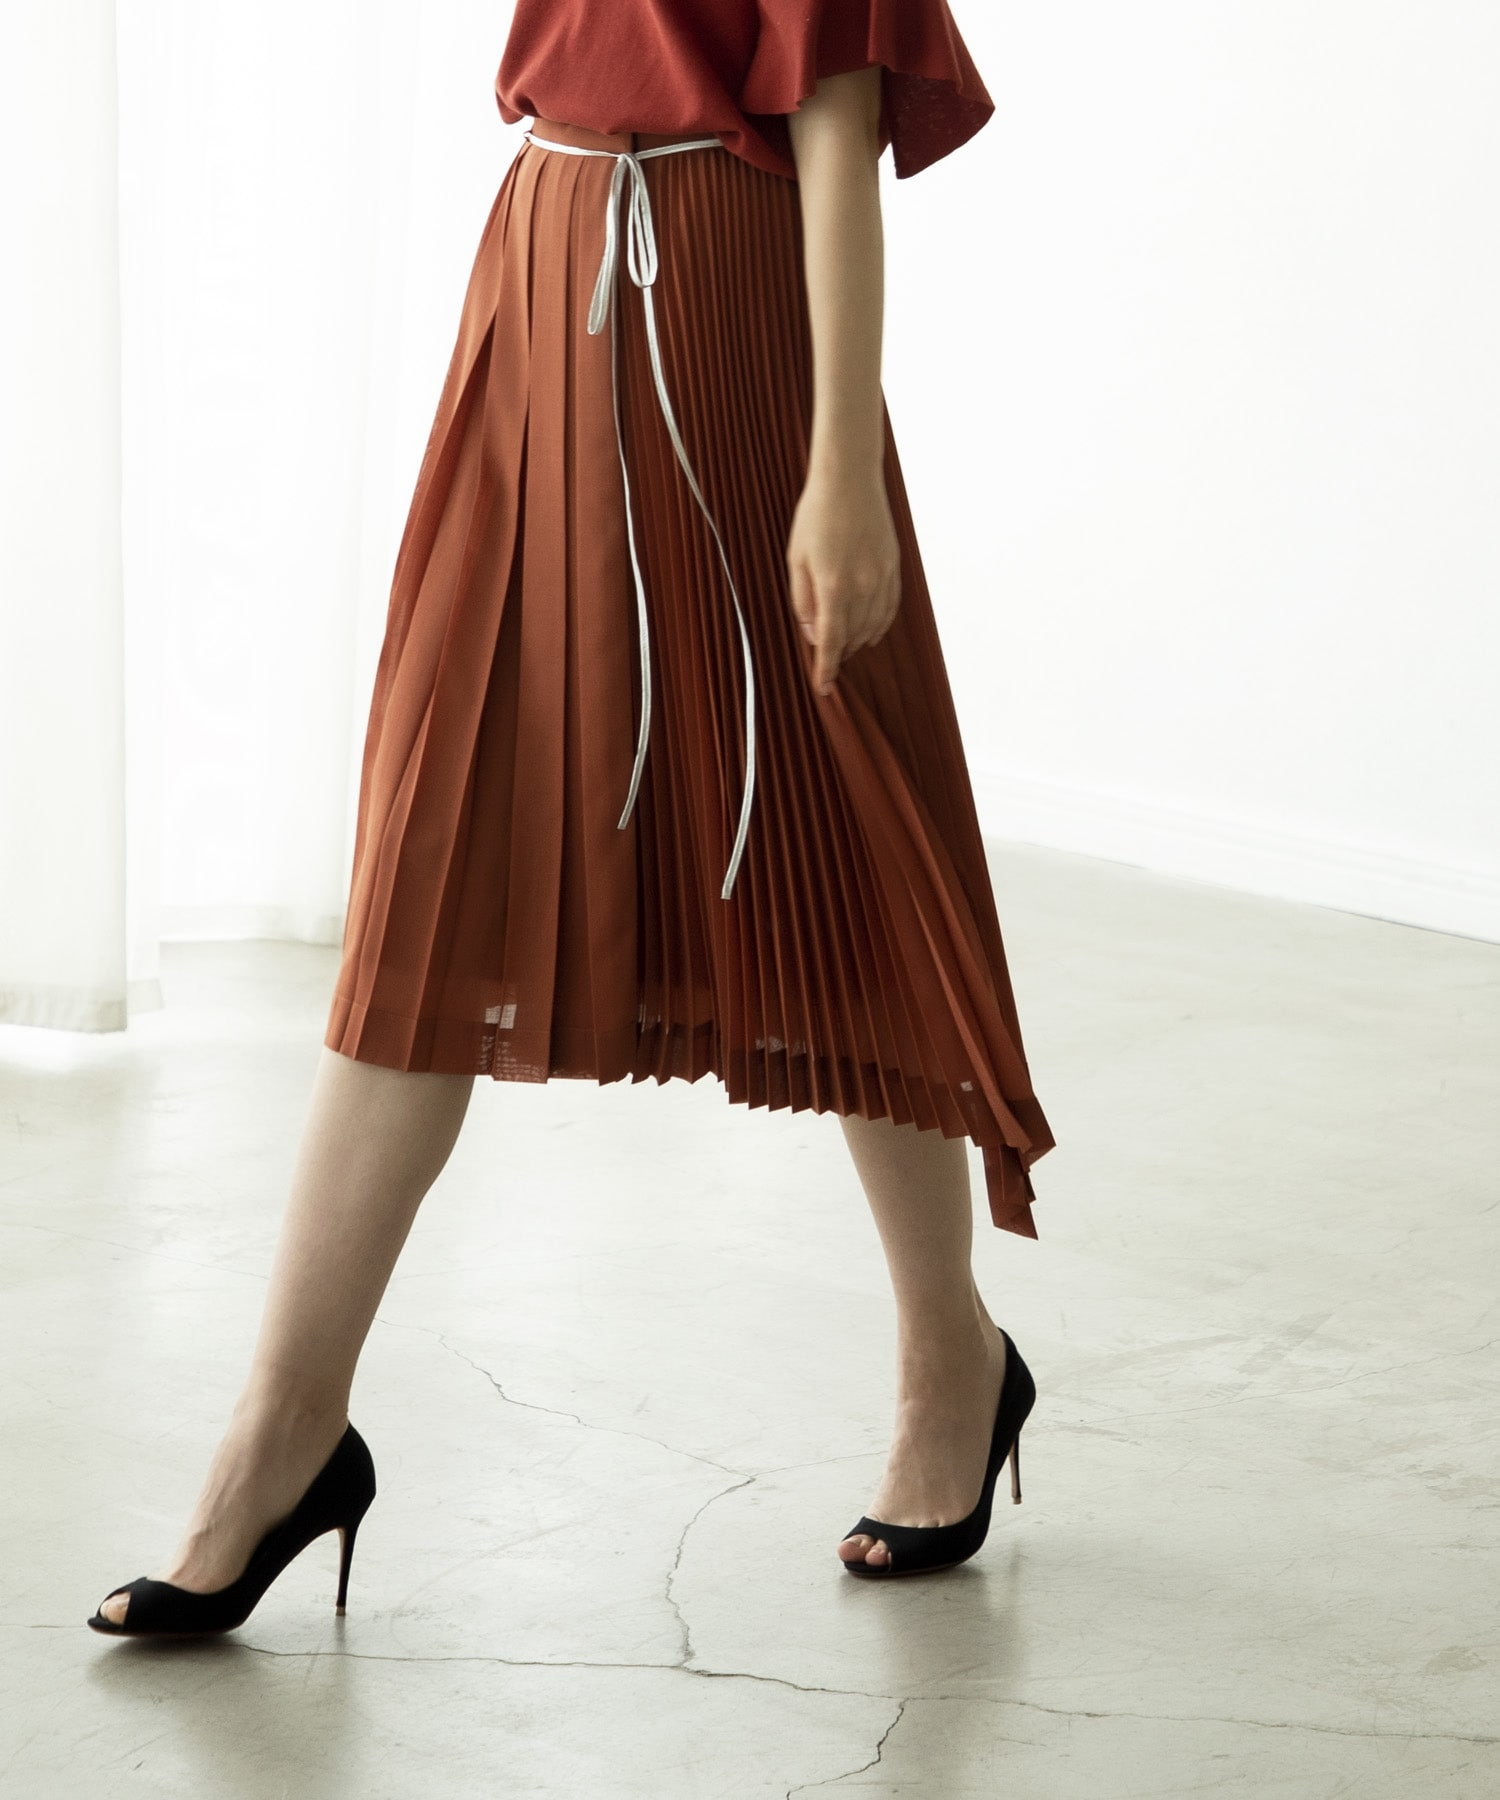 design asymmetric pleats skirt